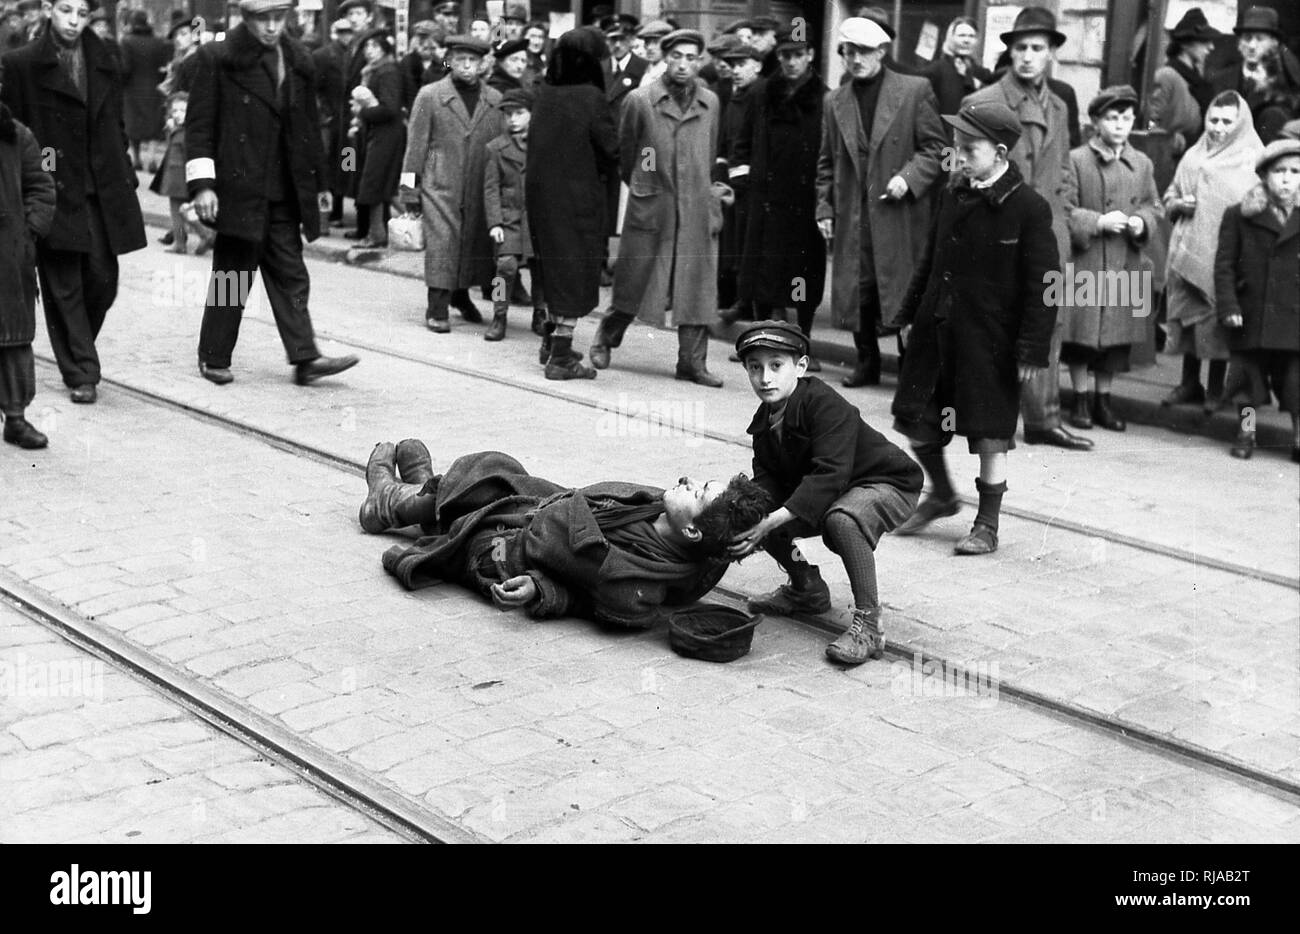 A young Jewish boy helps a man who fell on Tram Tracks, in the Warsaw Ghetto; Warsaw, Poland. The Warsaw Ghetto, was the largest of all the Jewish ghettos in German-occupied Europe during World War Two. It was established by the German authorities in 1940; within the new General Government territory of German-occupied Poland. There were over 400,000 Jews imprisoned there. - Stock Image